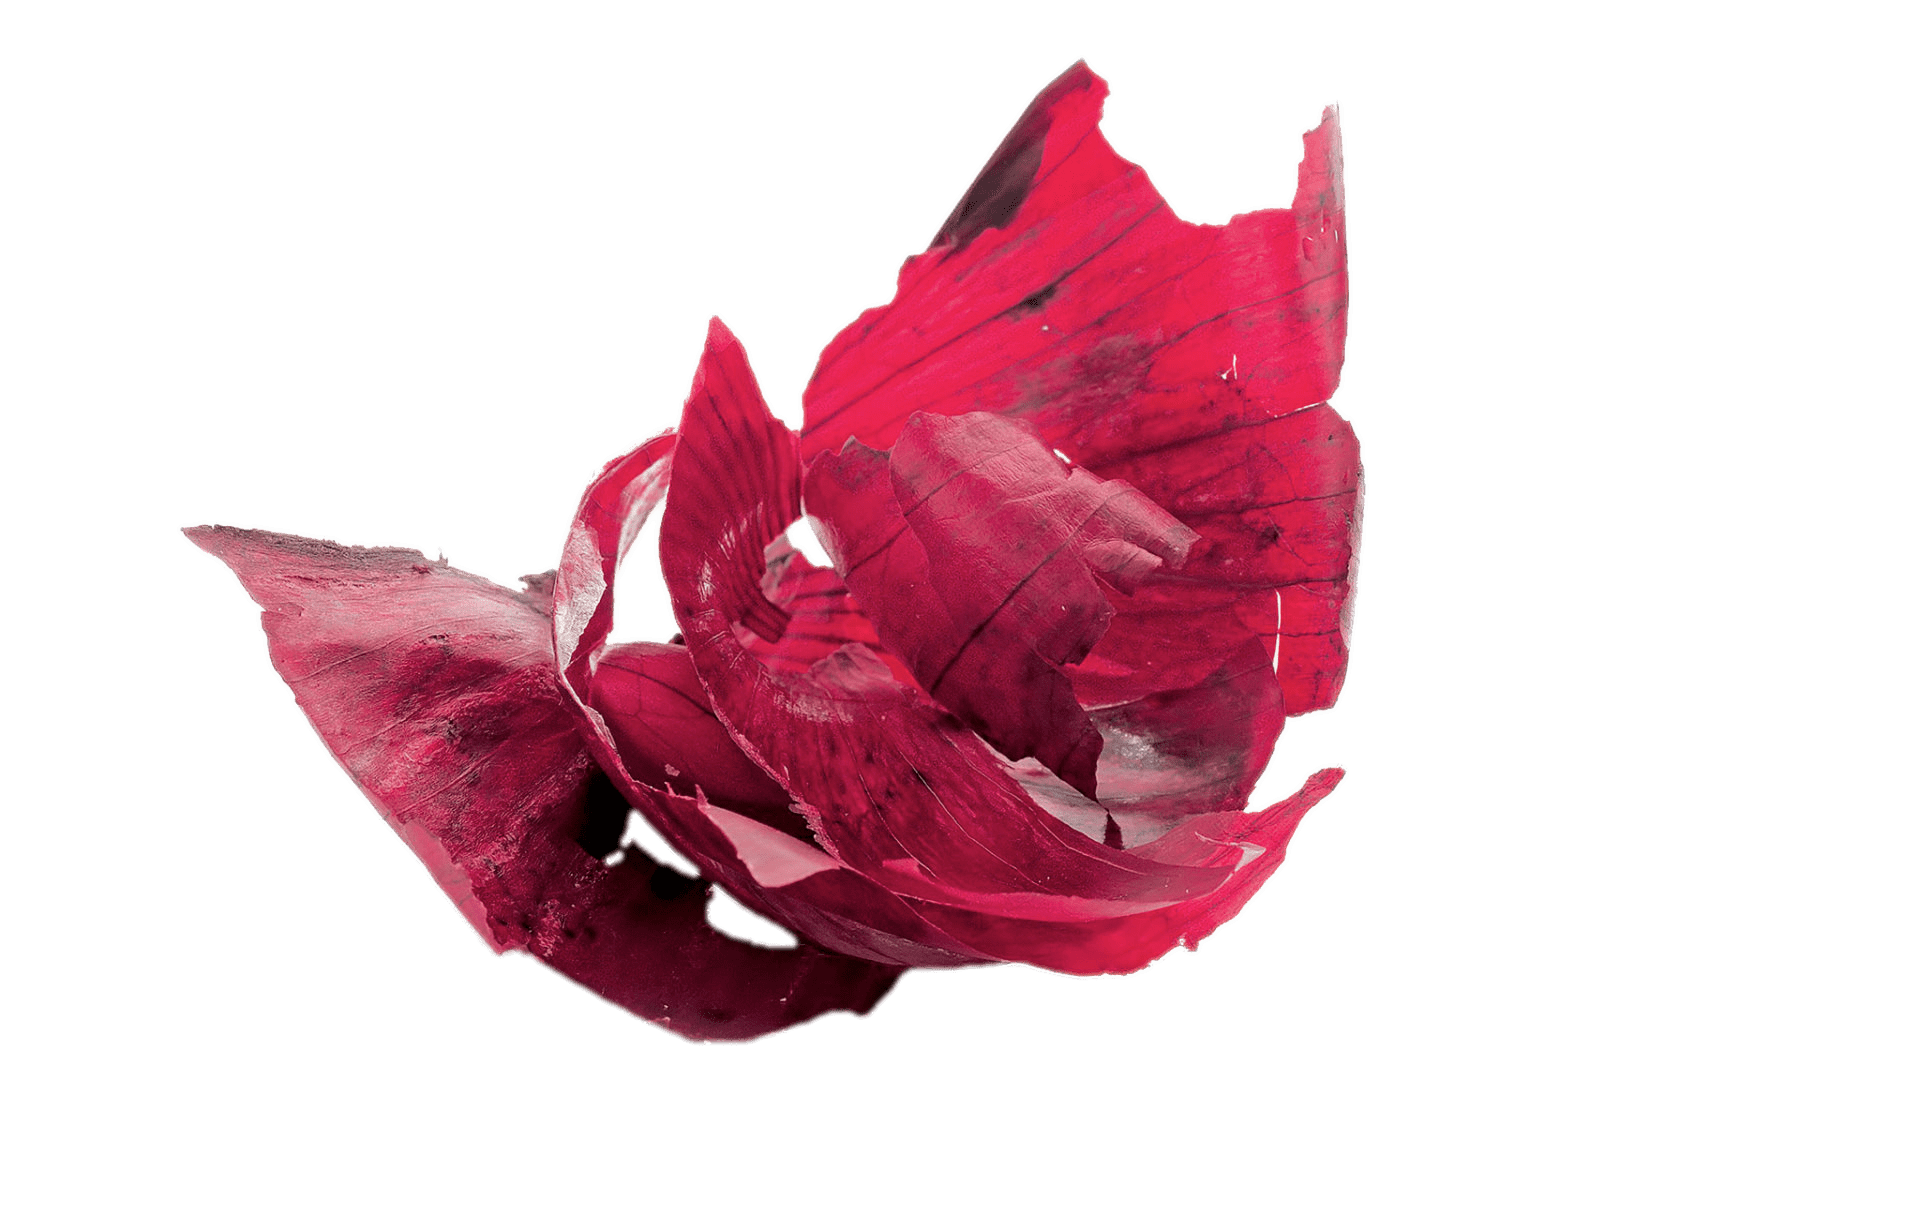 Apple peel clipart free download Red Onion Peels transparent PNG - StickPNG free download